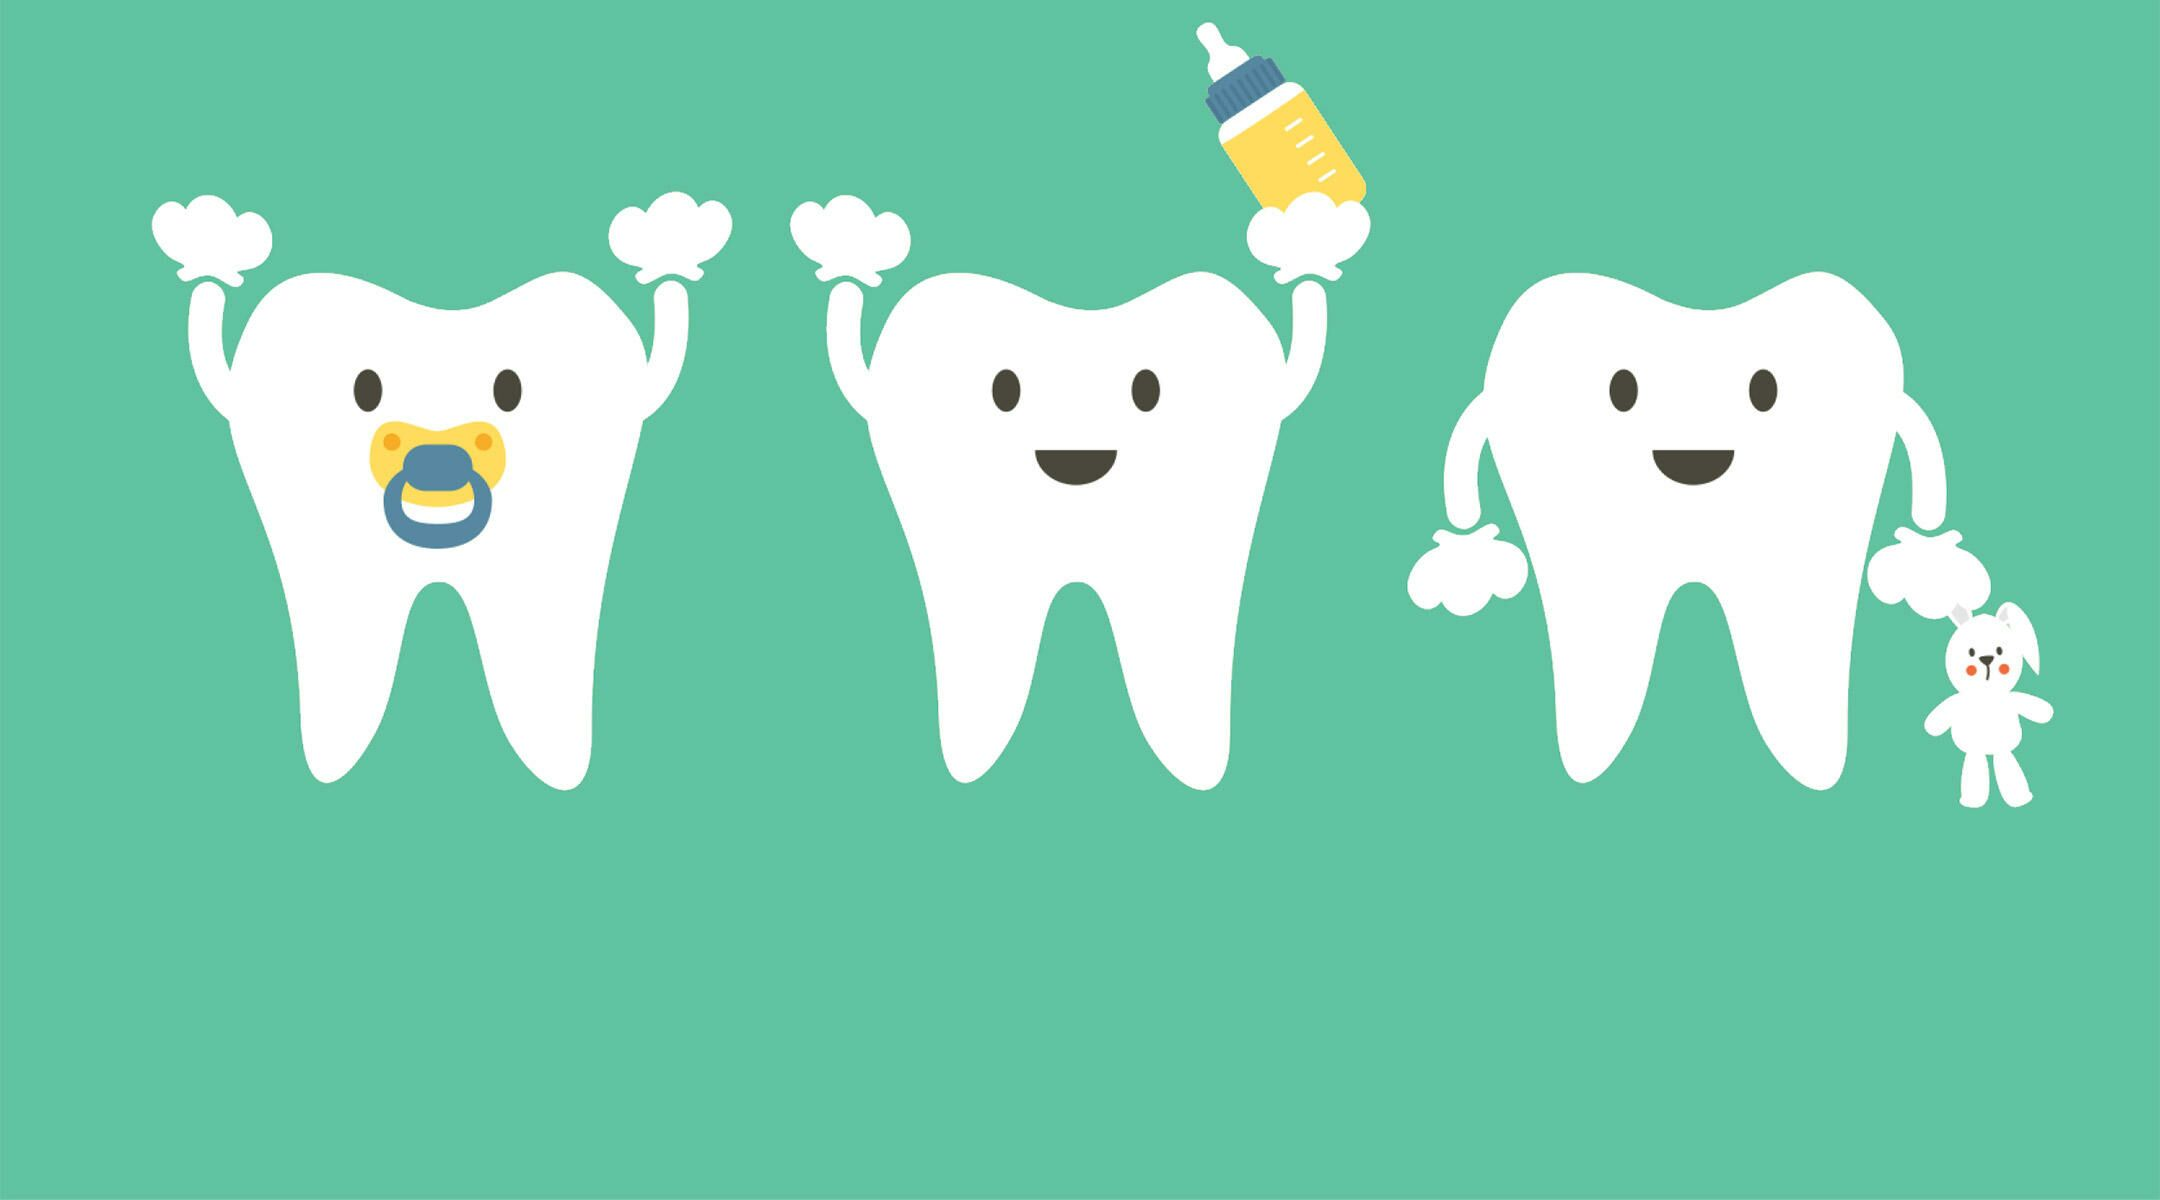 Tool teething chart baby teeth illustration ccuart Image collections